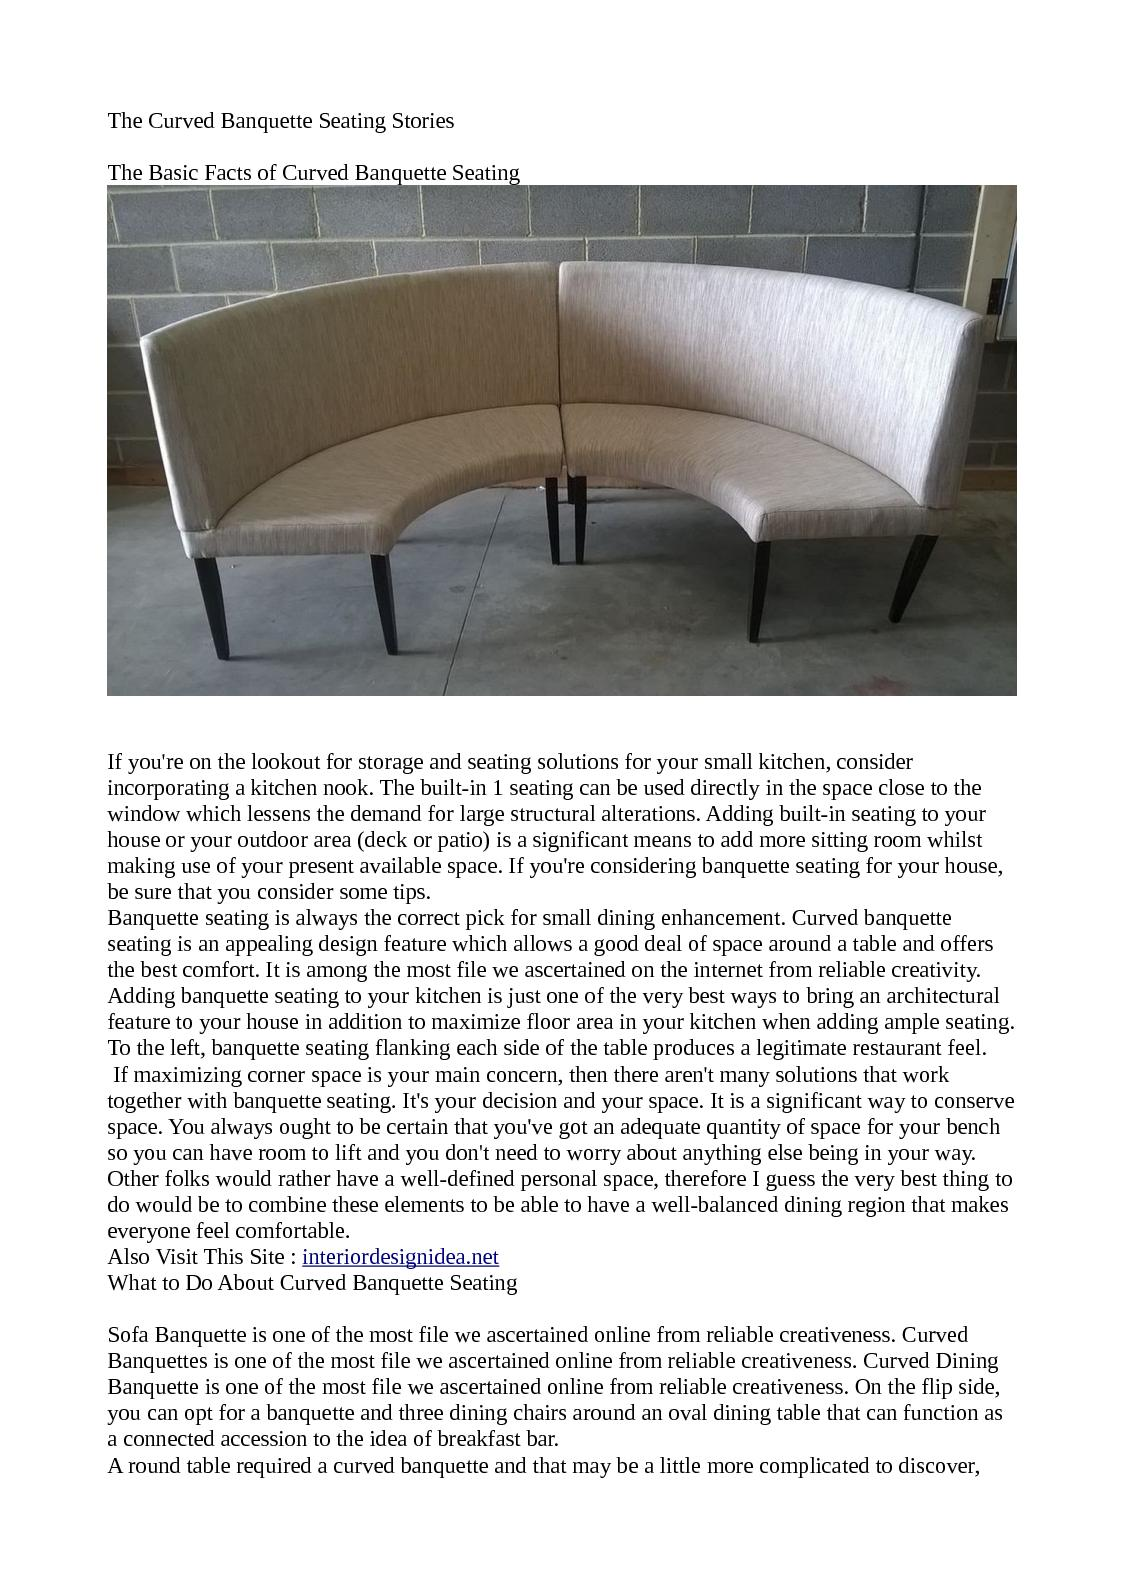 Calameo The Curved Banquette Seating Stories